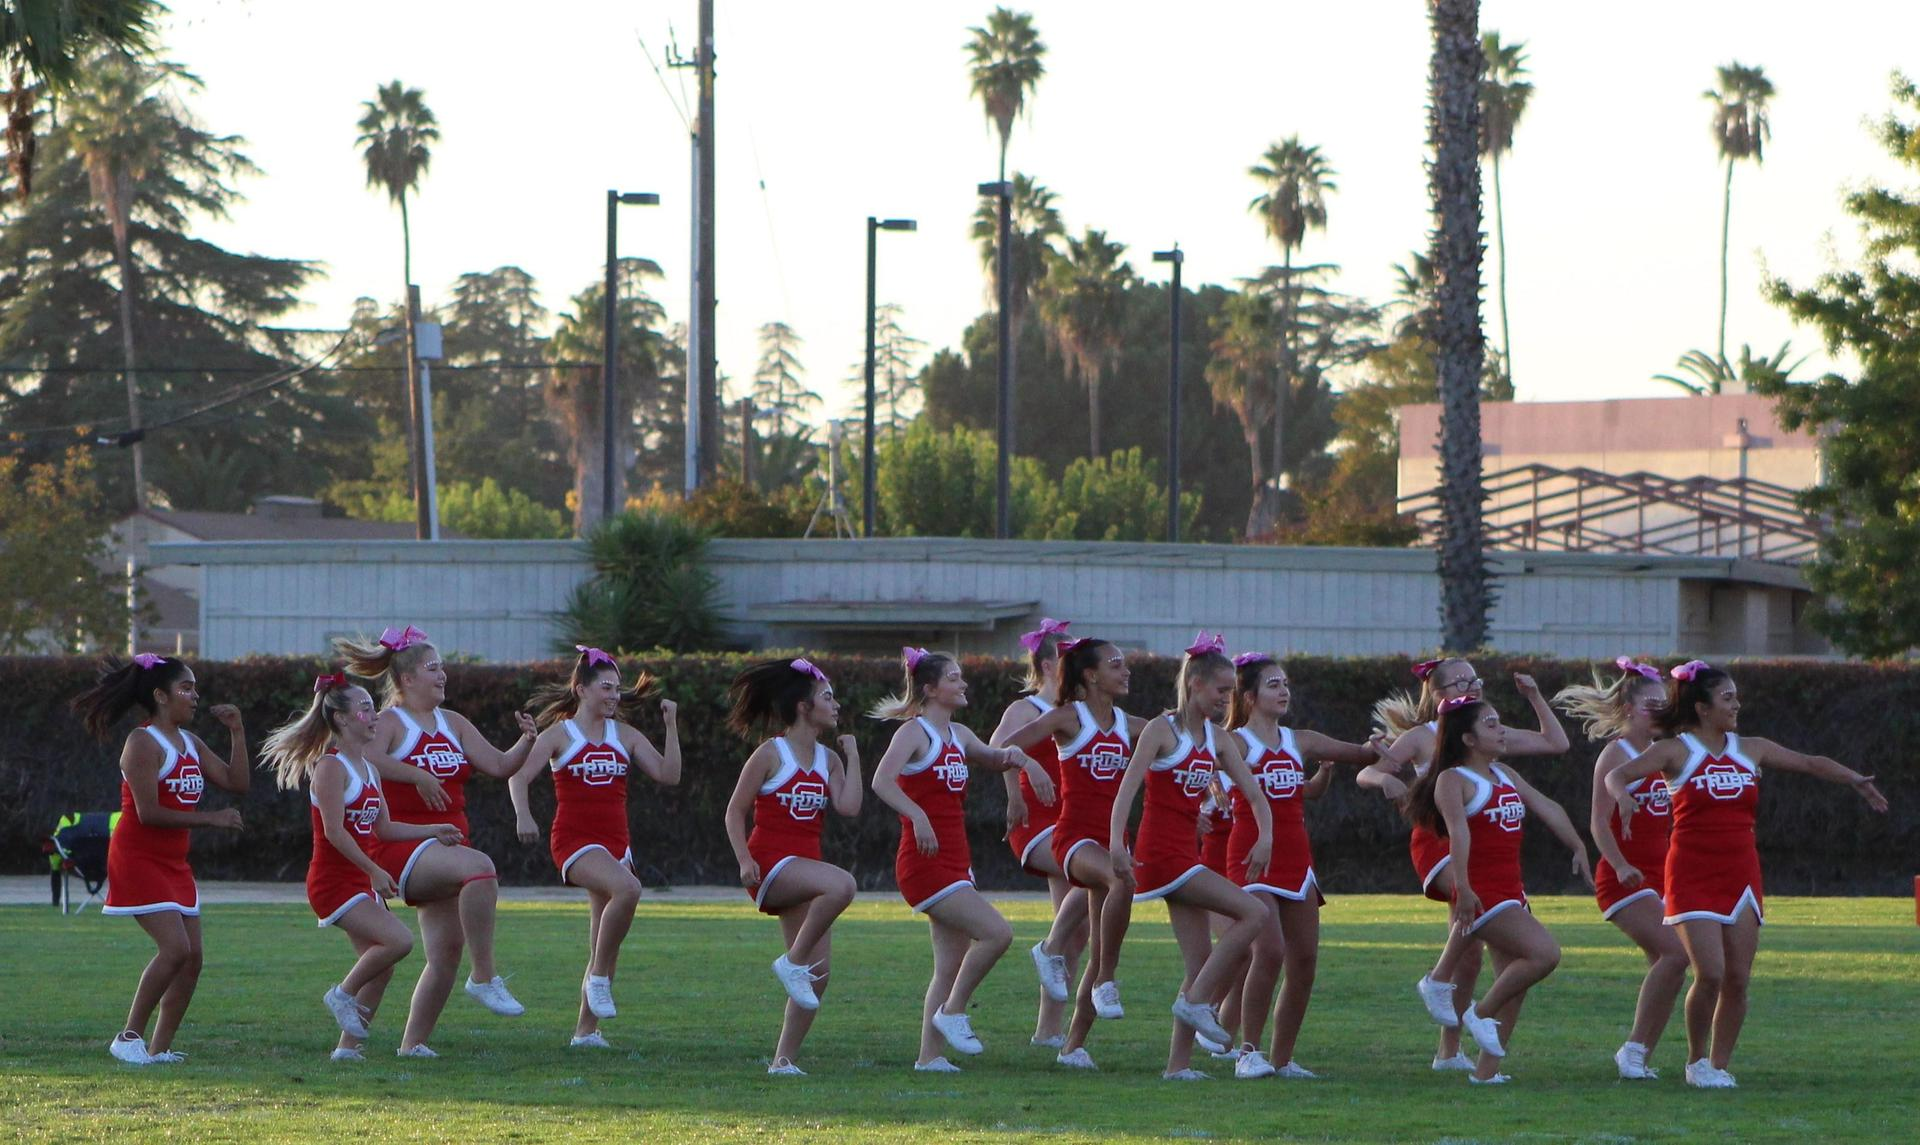 Junior Varsity boys and cheerleaders at the football game against Yosemite